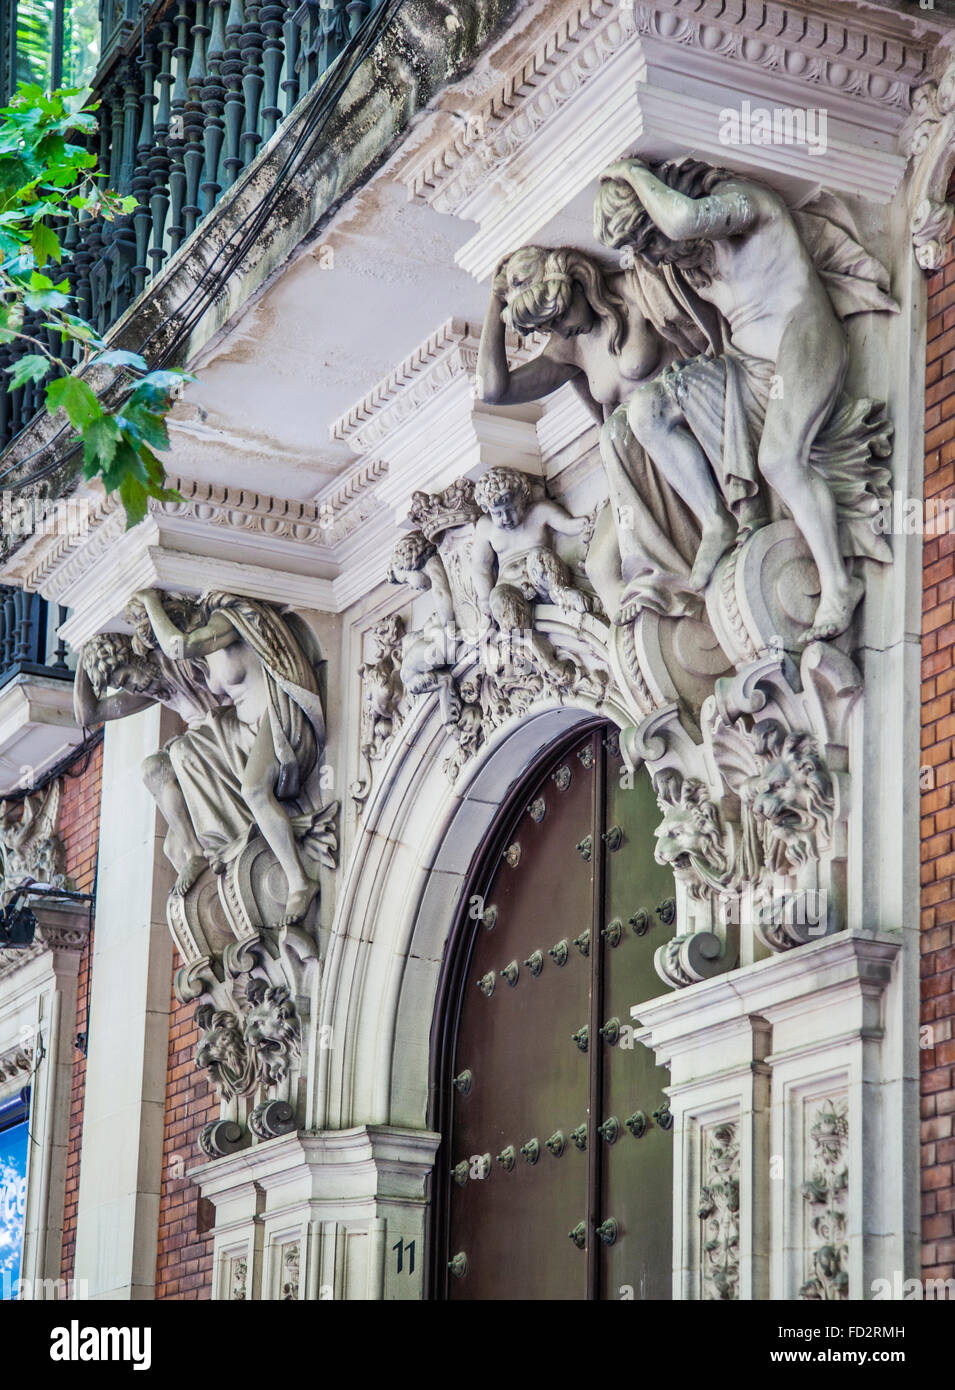 Spain, Andalusia, Province of Seville, Seville, Casco Antiguo, caryatid and atlantid hemi-figures at Calle Reyes - Stock Image